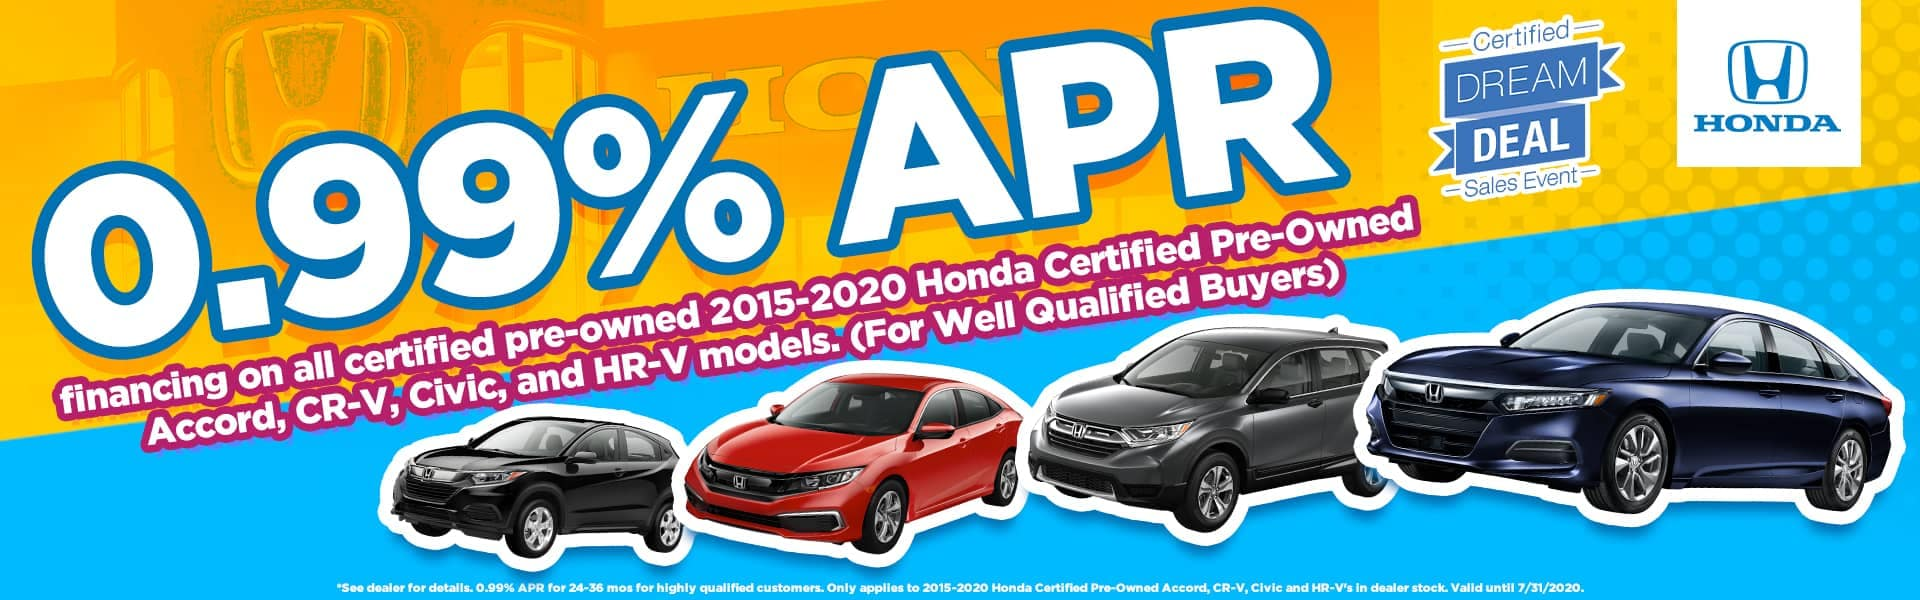 0.99% APR Financing on Honda CPO